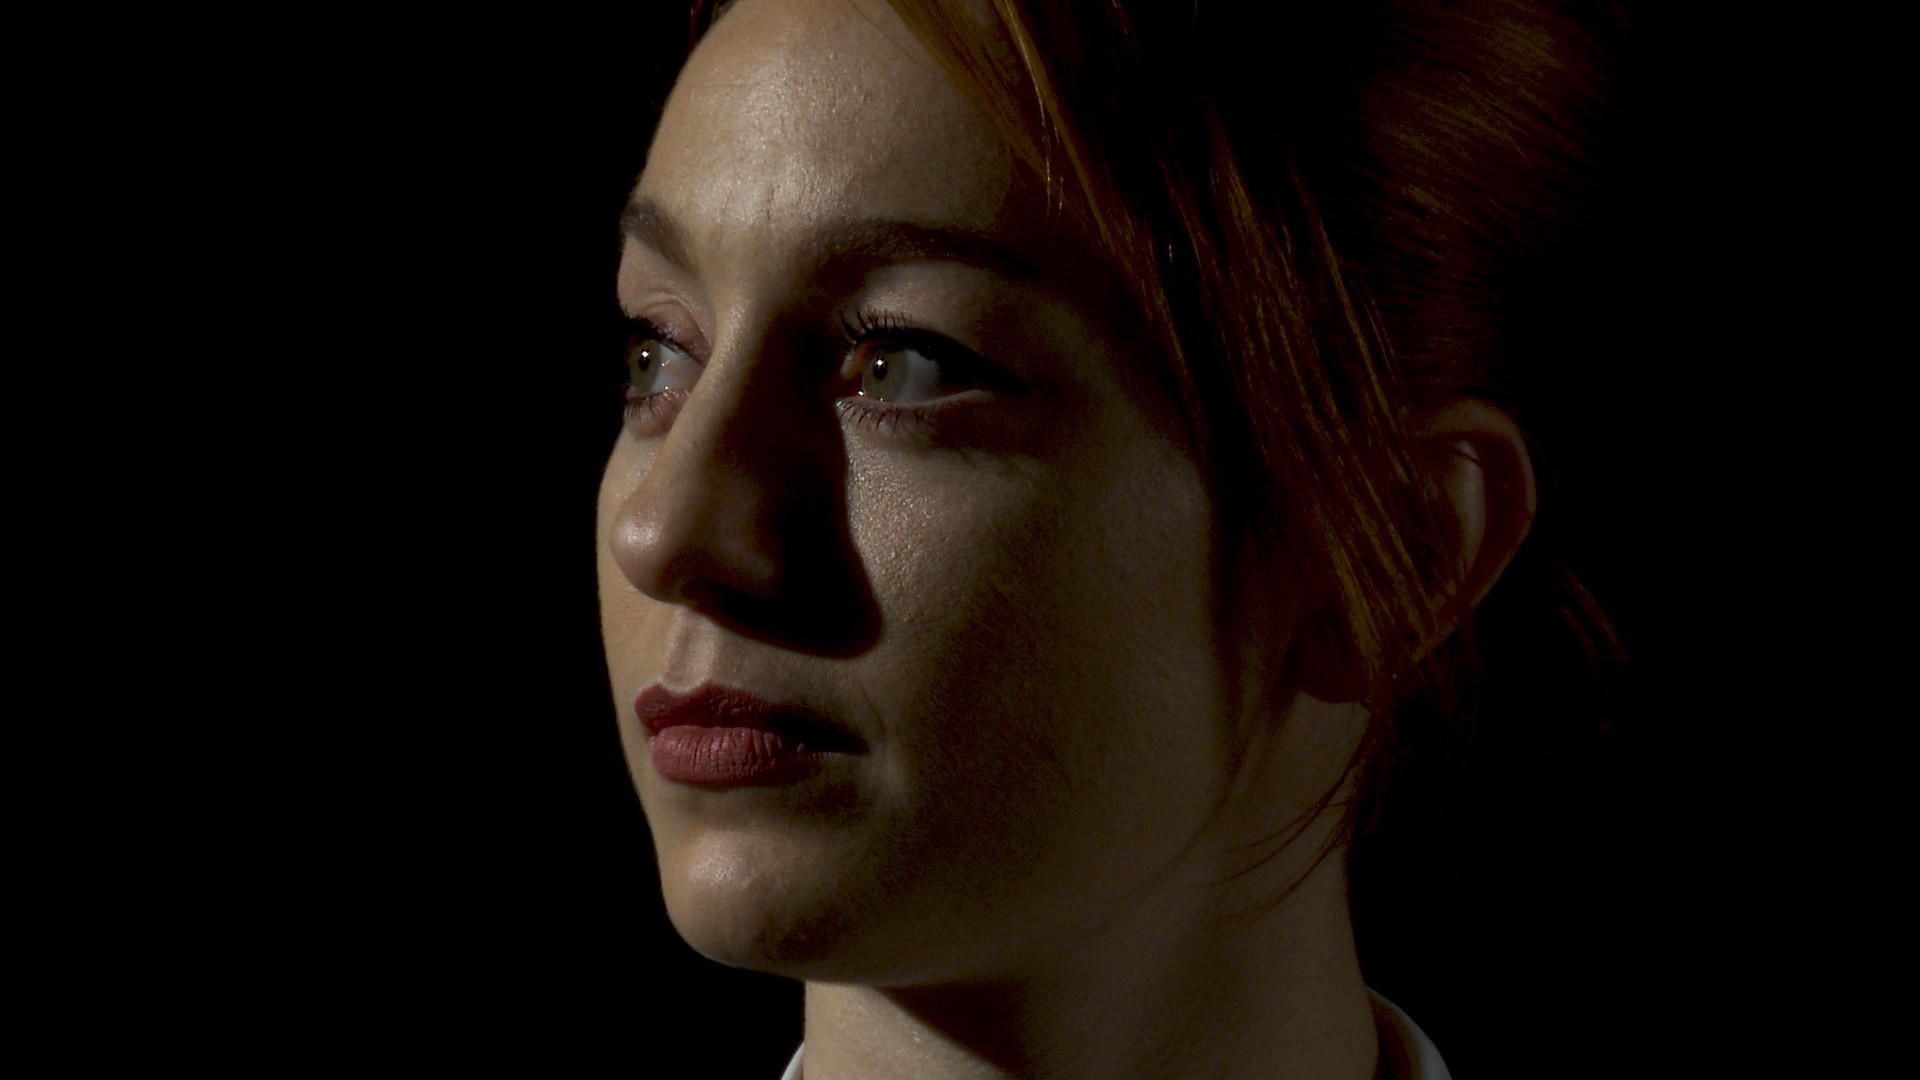 Still from short film Big Blind of actor Leah Cunard